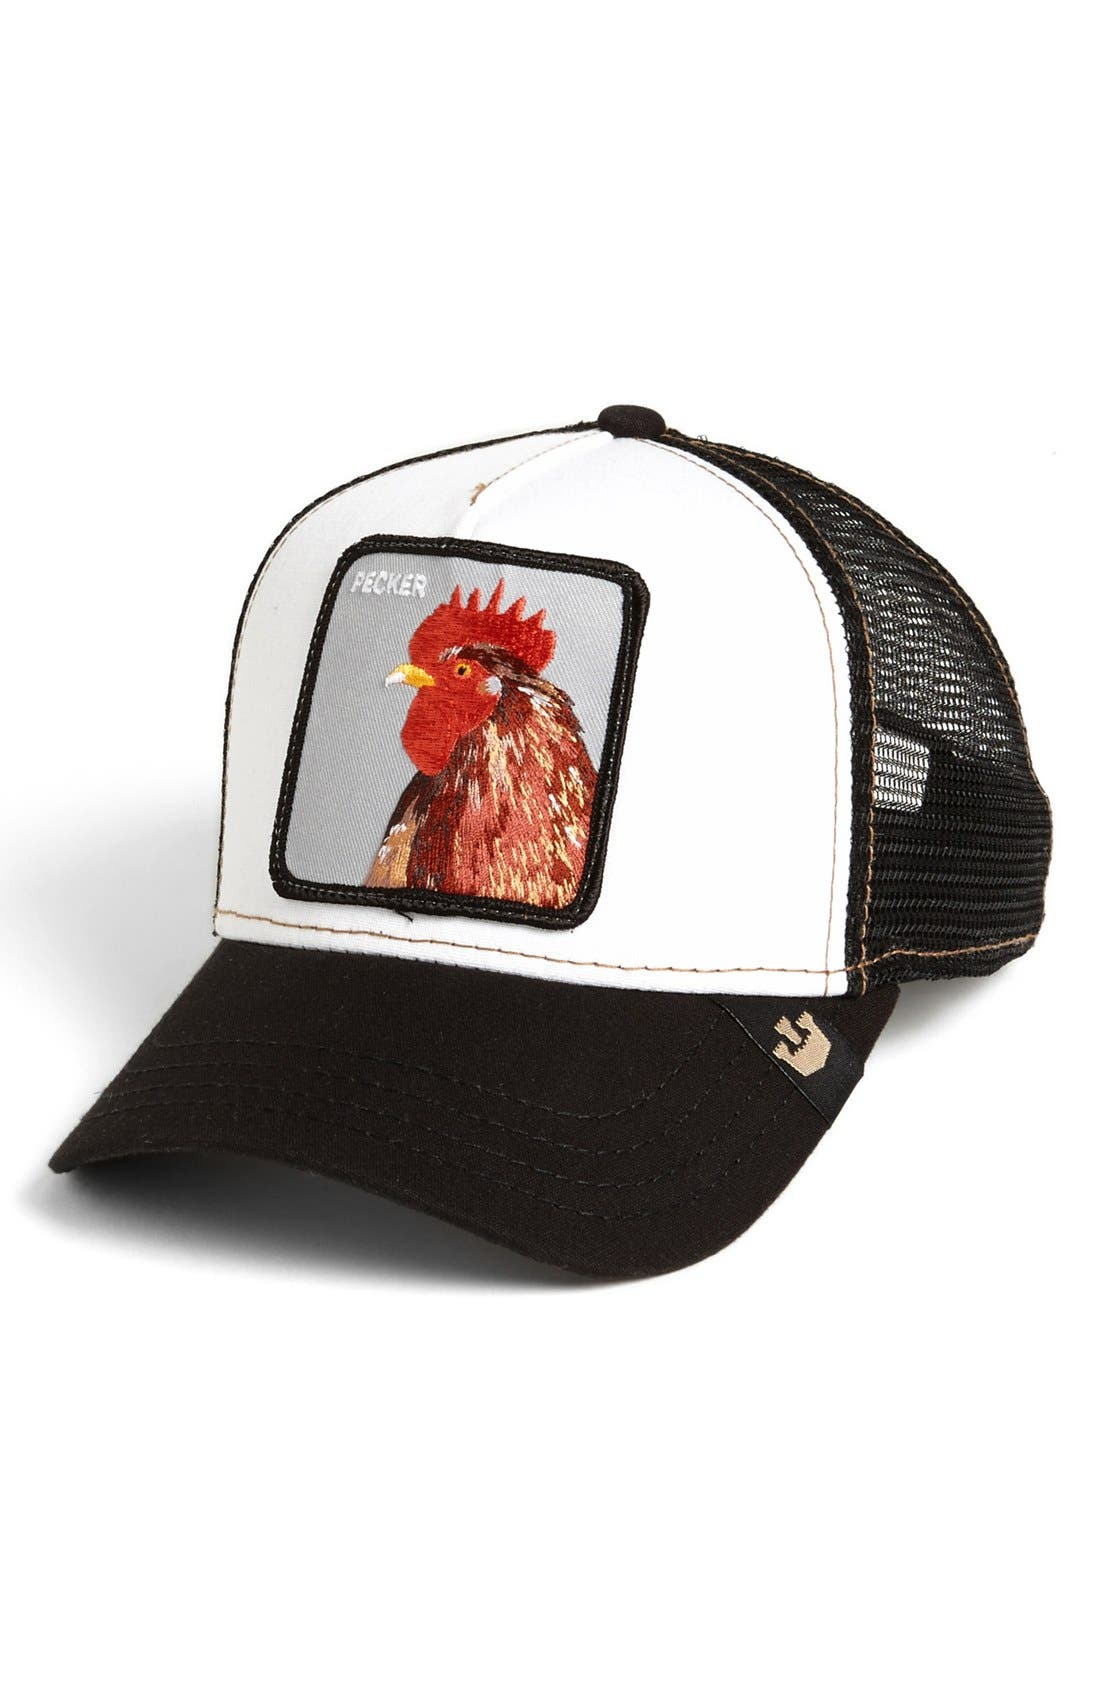 'Chicken' Trucker Cap,                             Main thumbnail 1, color,                             001